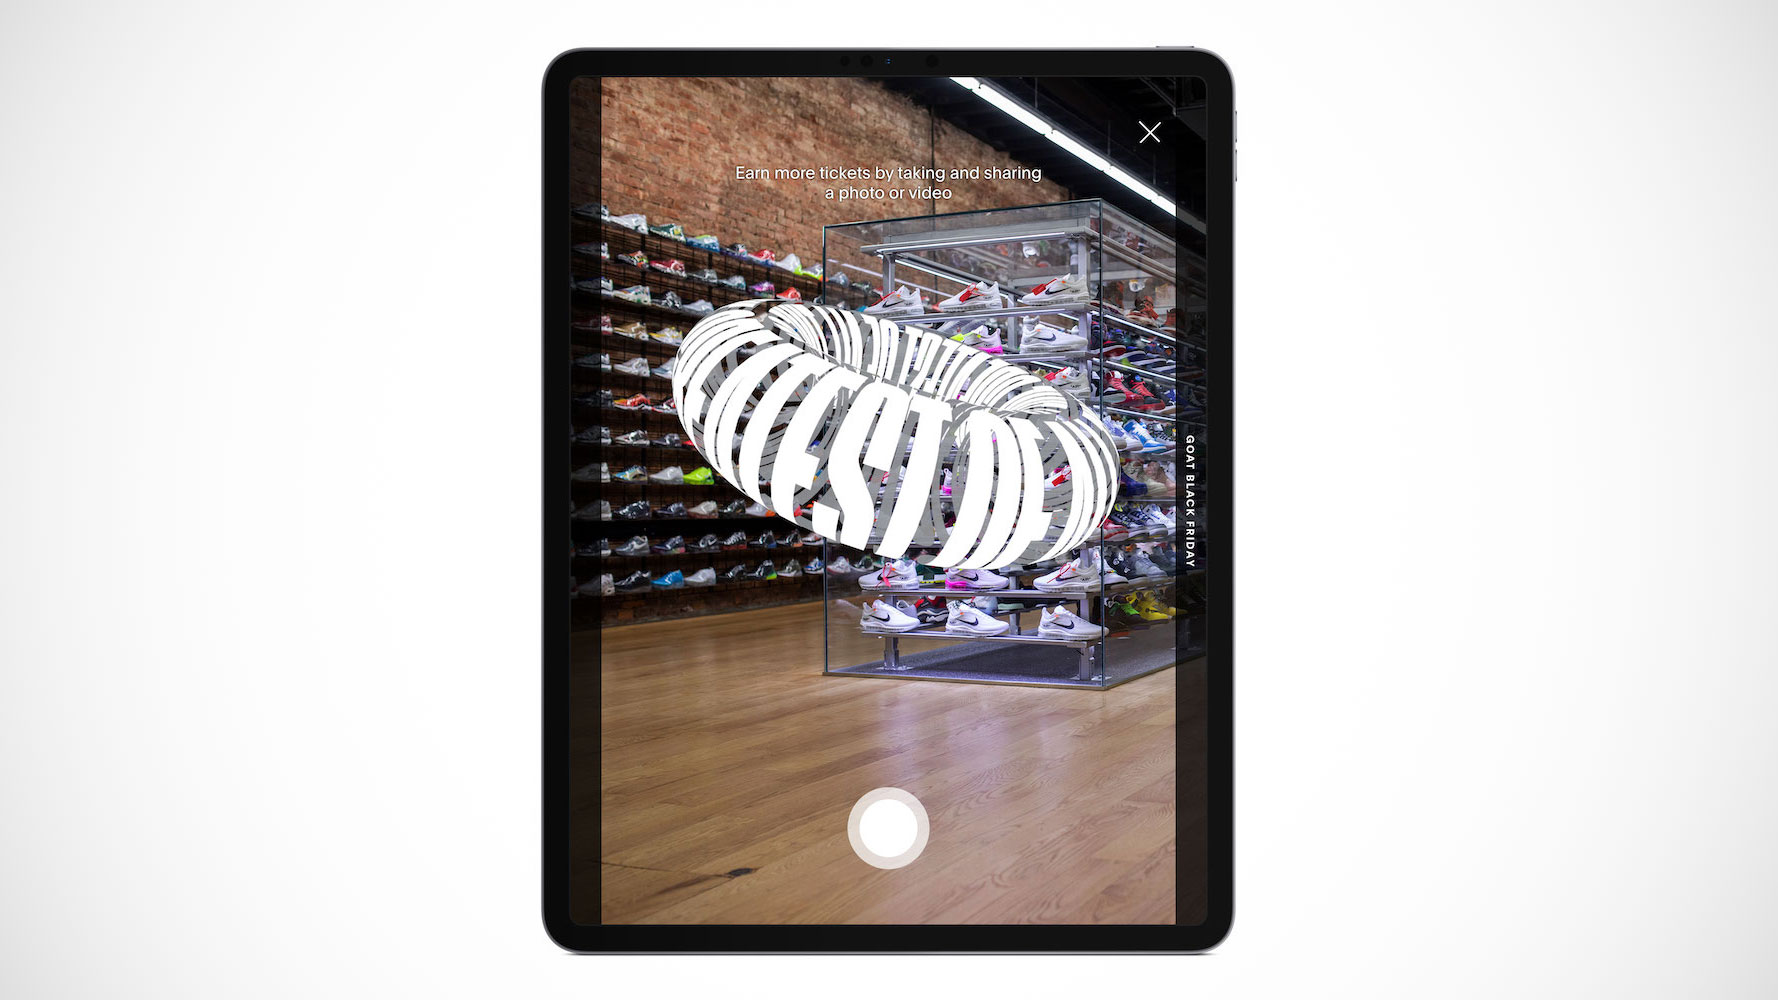 GOAT AR iPad Pro1 - 10 USD 10 winners! Attention Shit Fam📣 The Shit Bot is joining the NIKE world! 💩Added help for Nike SNKRS app & net💩 LET'S GET IT!… https: